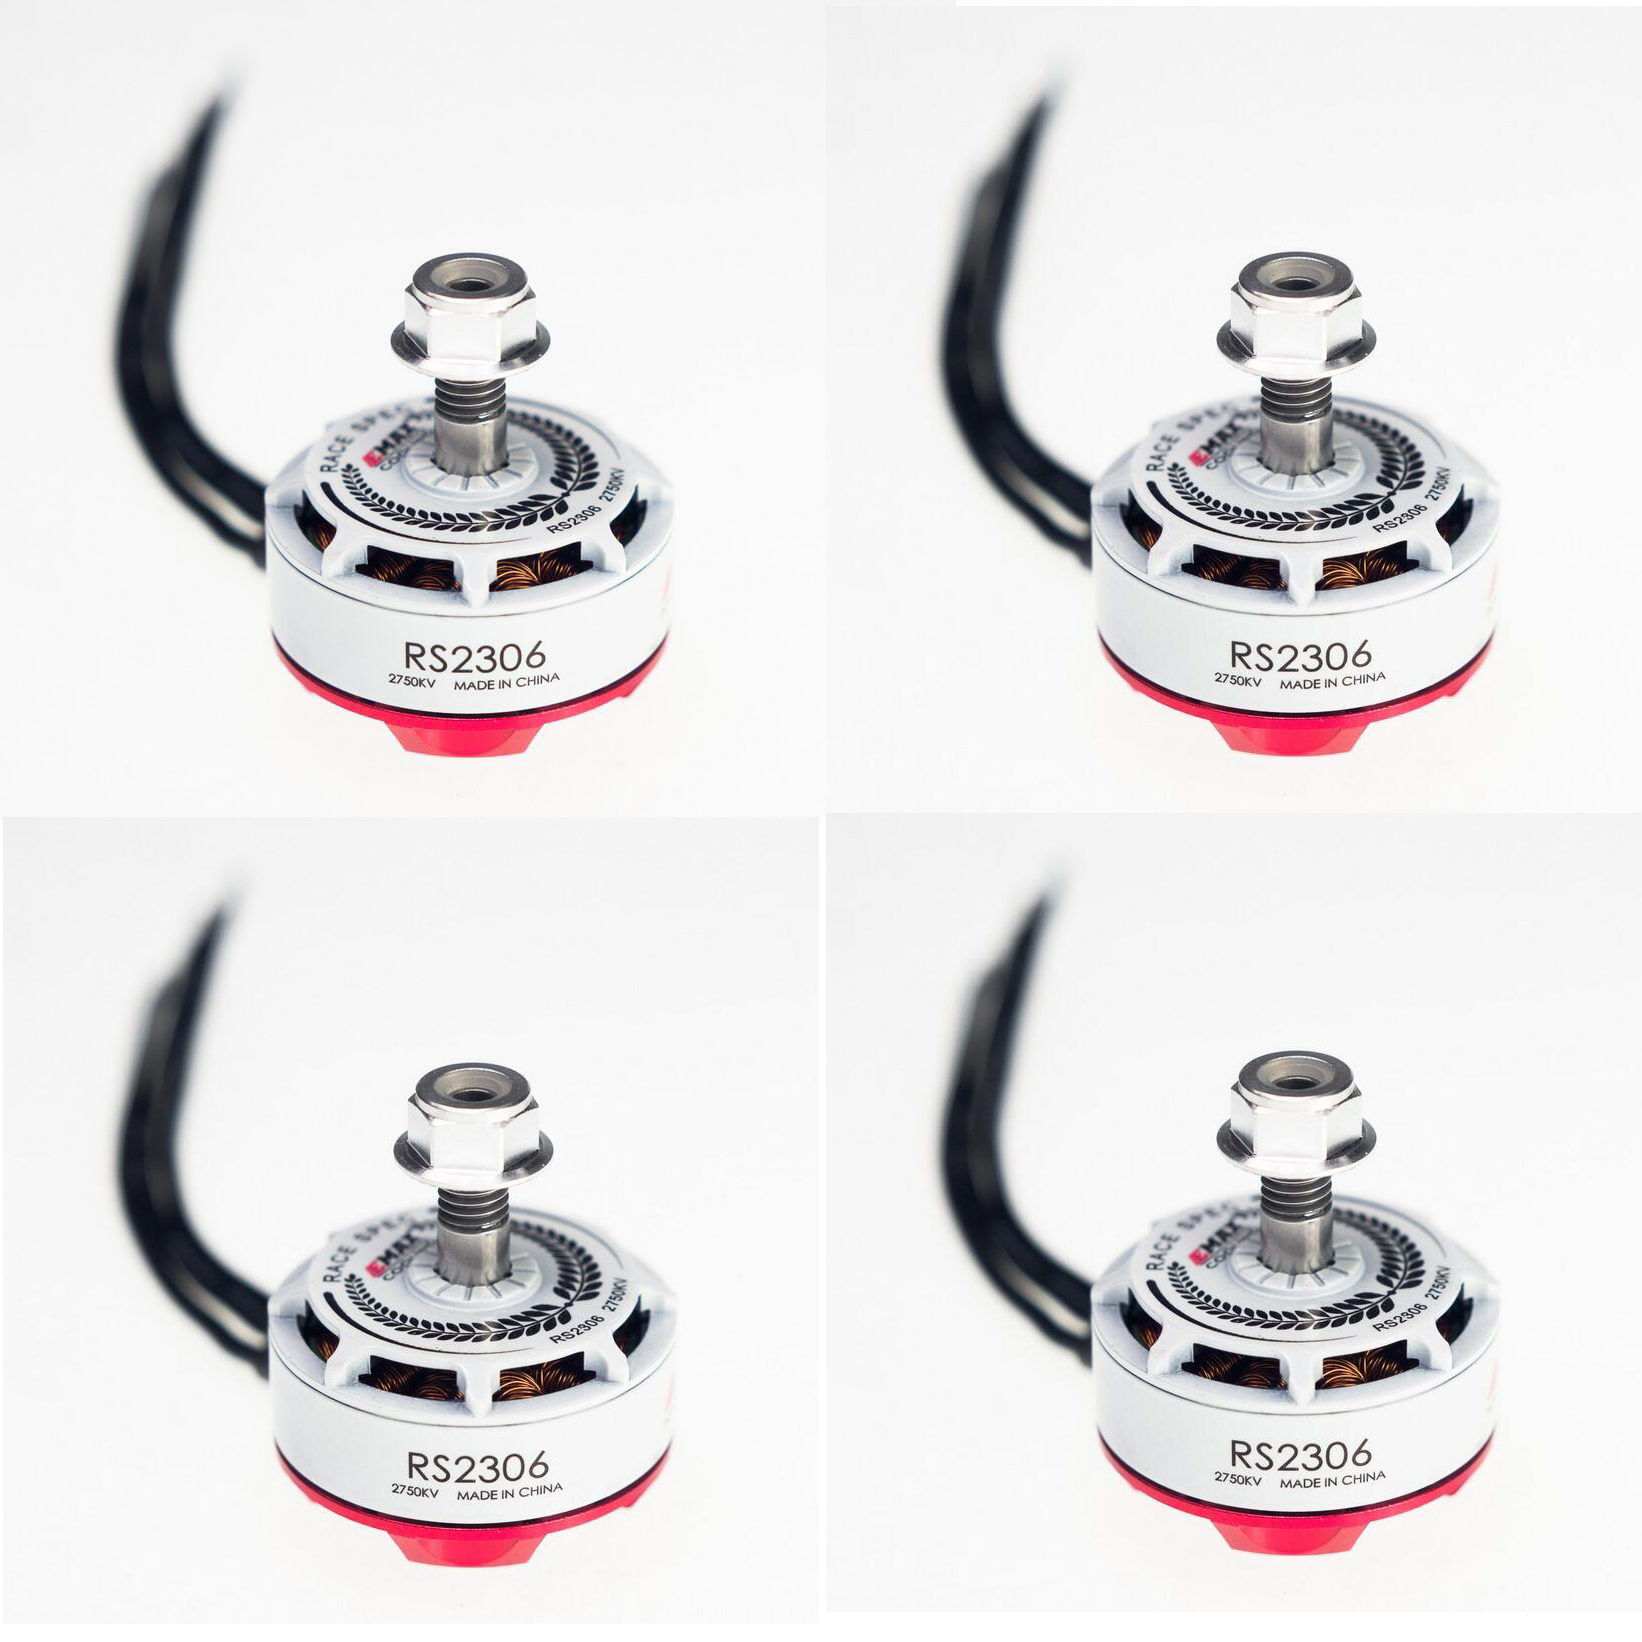 4PCS/lot Emax RS2306 White Edition 2400KV 2750KV 3 4S Racing Brushess Motor for FPV Racing RC Multicopter